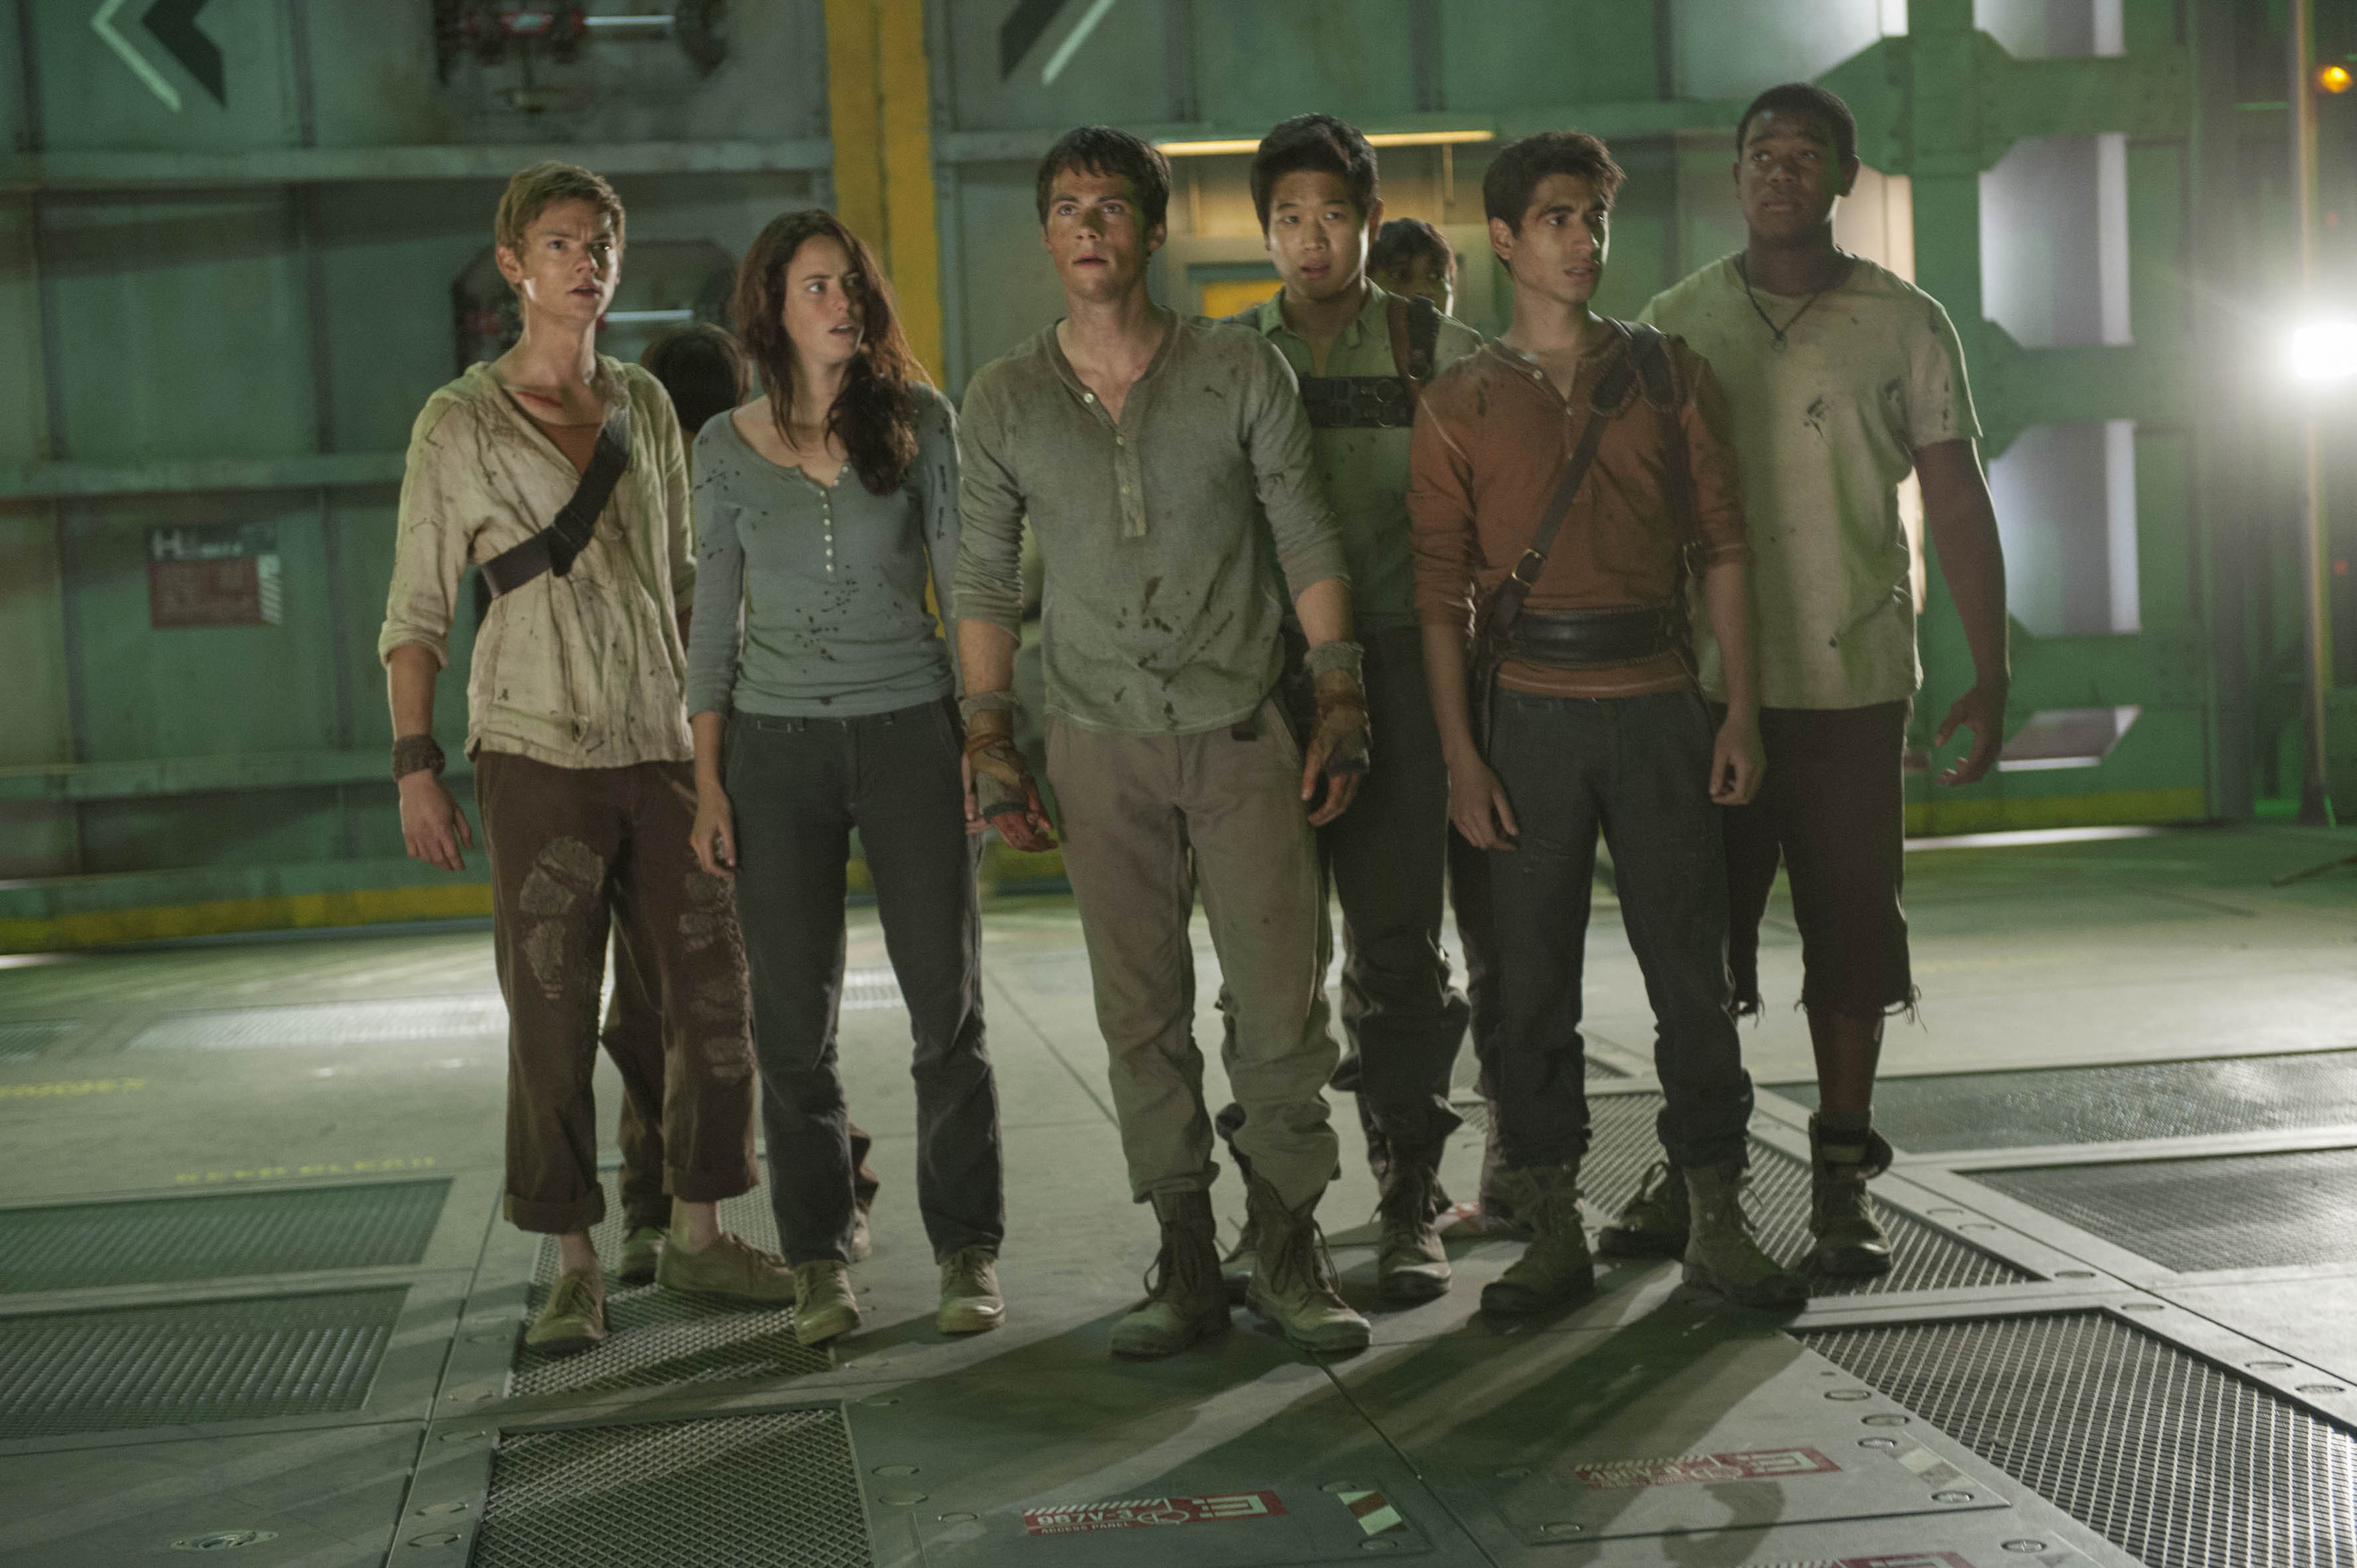 The cast of Maze Runner: The Scorch Trials, who are forced to flee from the zombie-like Cranks and the shady W.C.K.D.